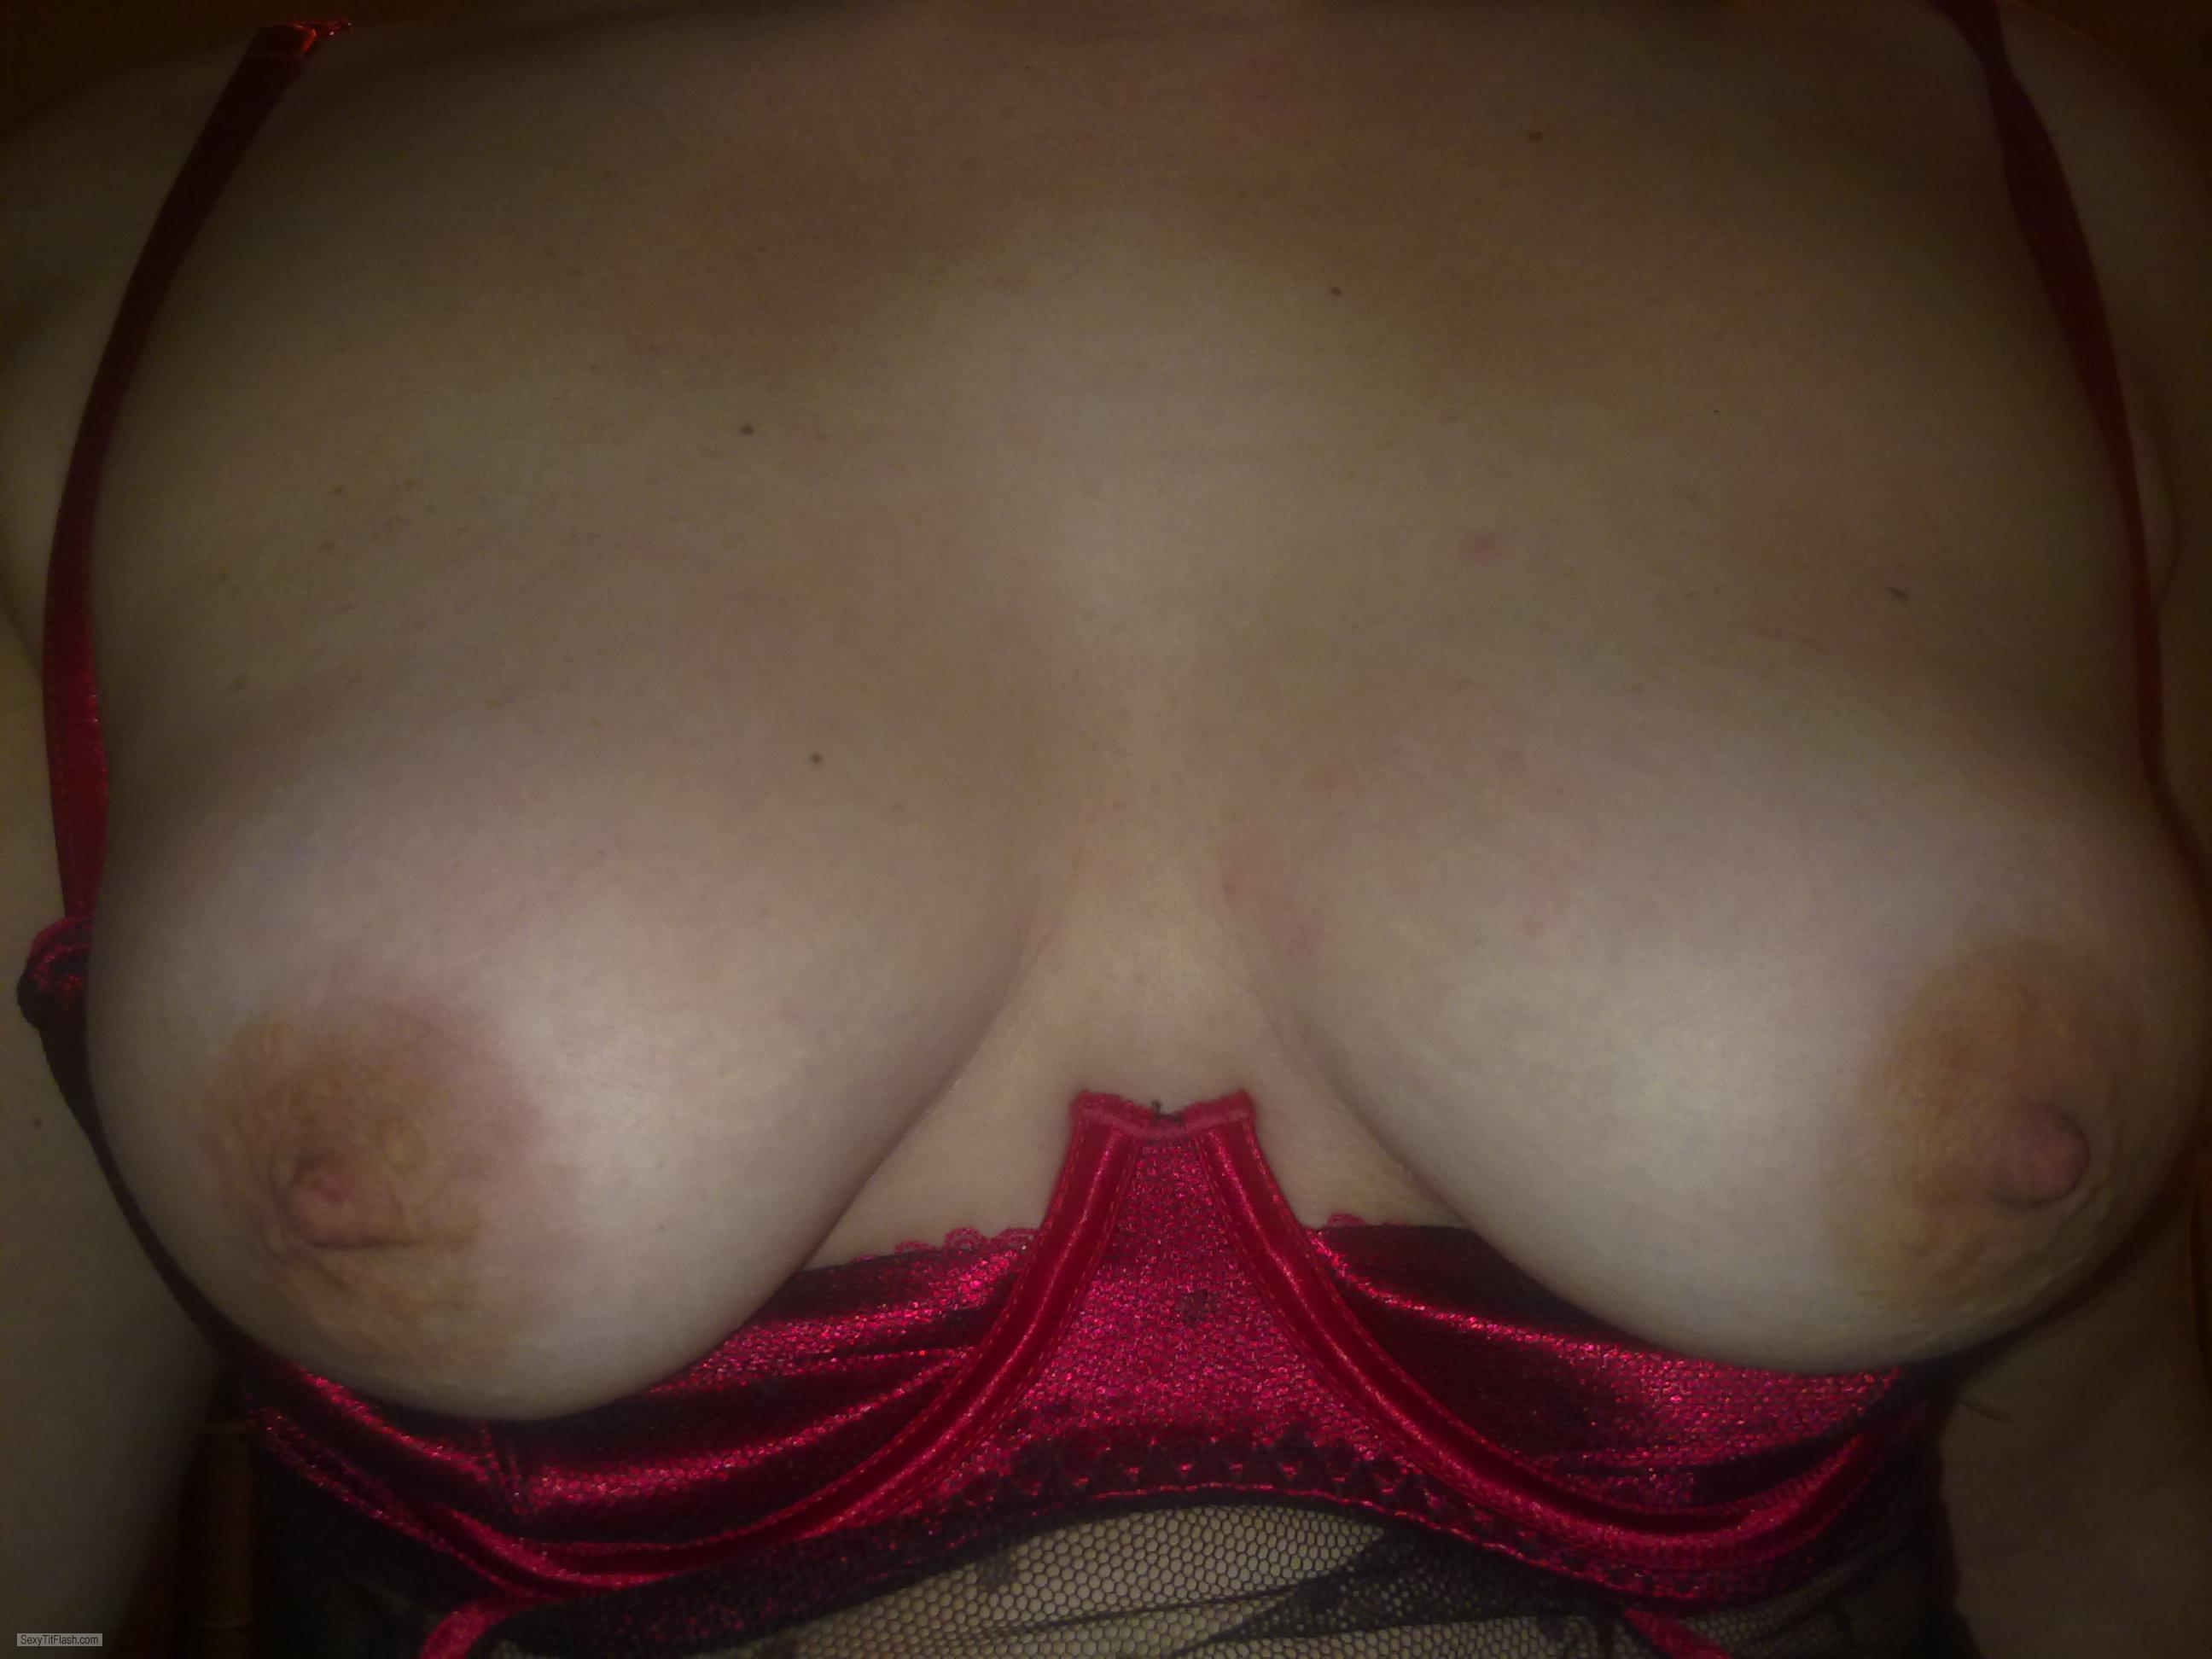 Tit Flash: My Small Tits - PJ. from United Kingdom